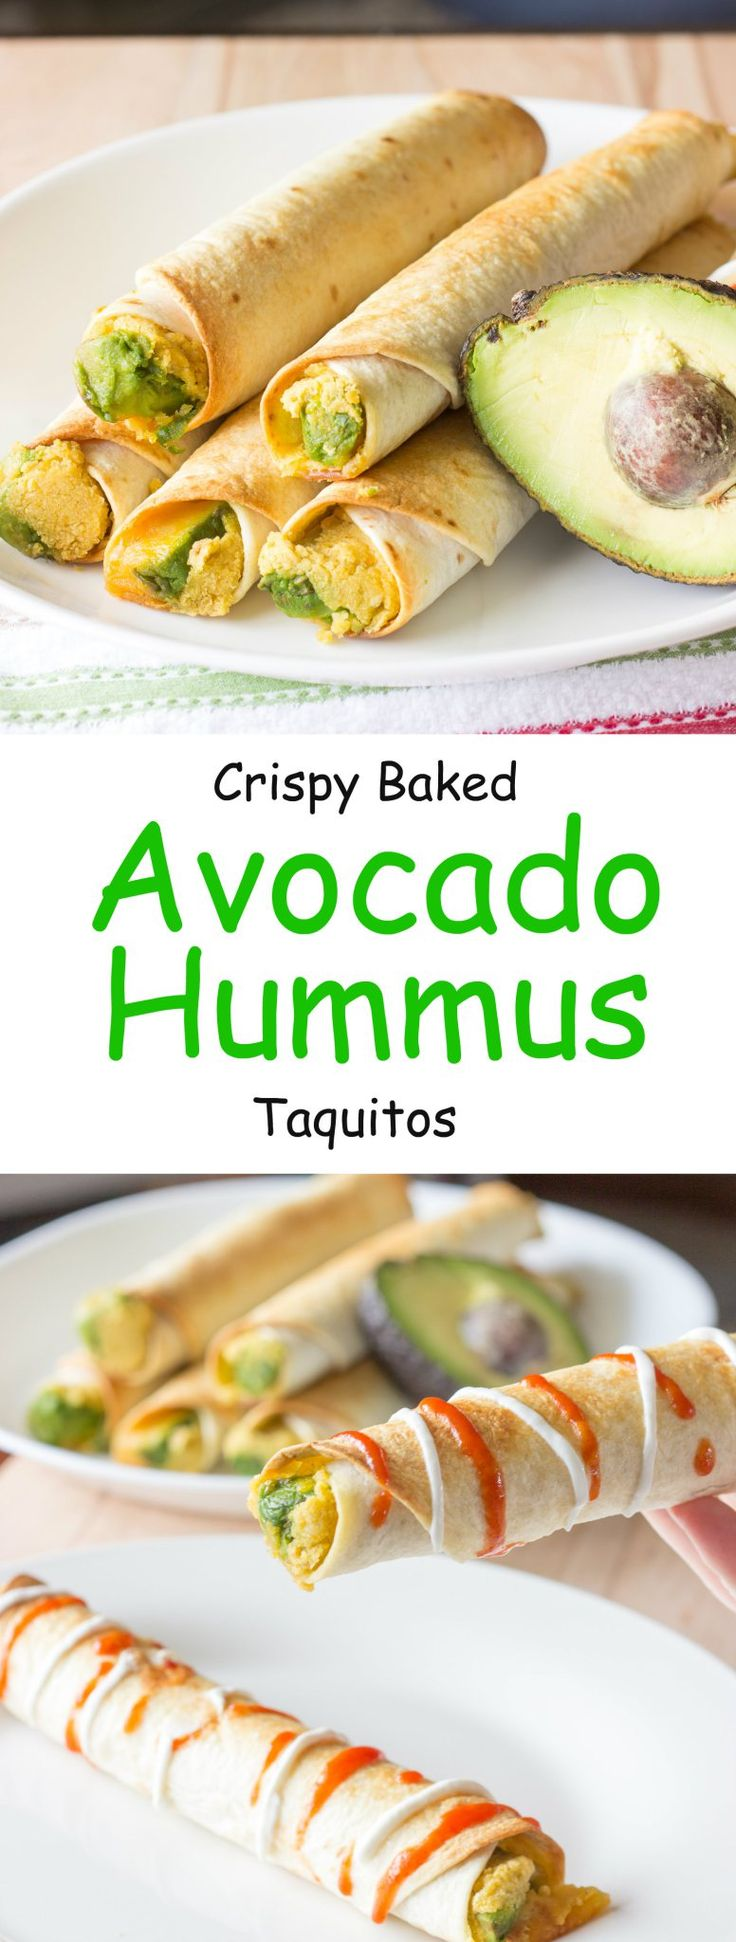 Avocado Hummus Taquitos - Perfect as a #healthy #appetizer or #dinner option. #vegetarian